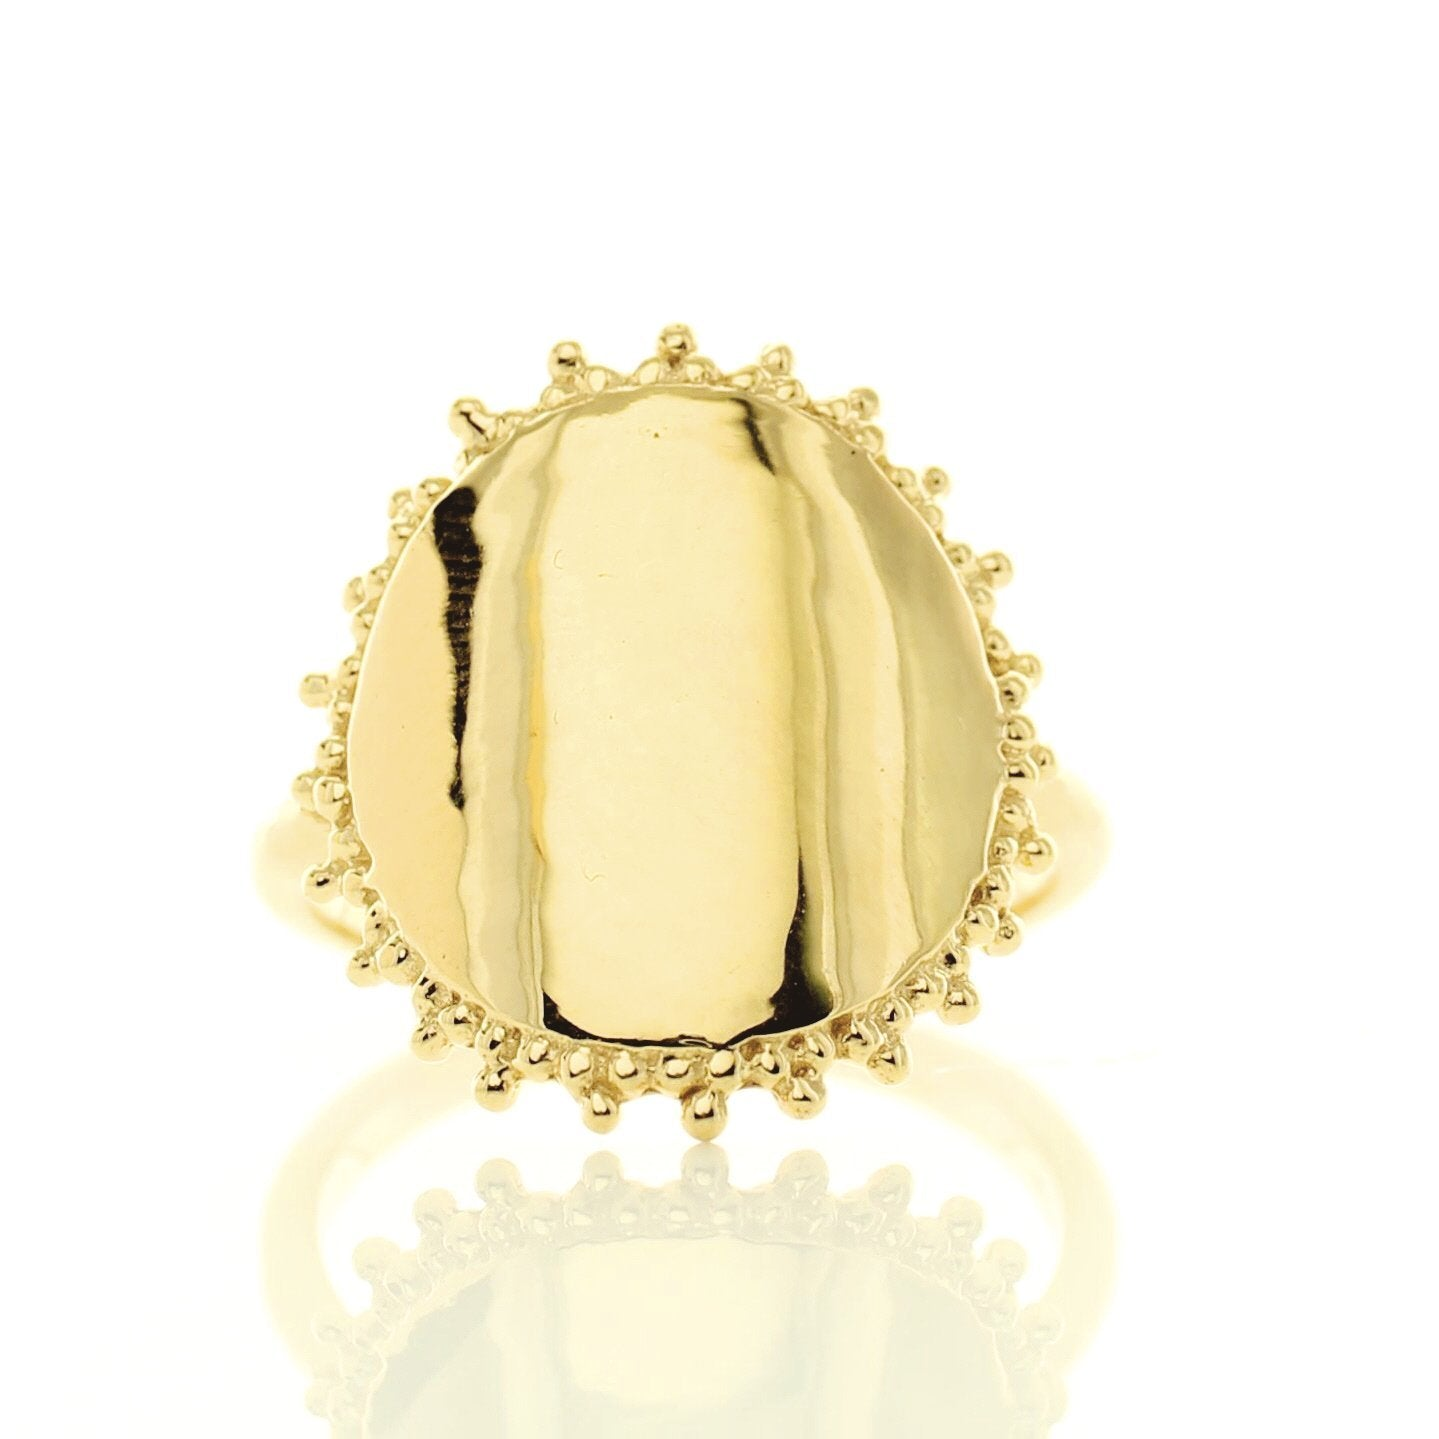 BELIEVE SOLEIL RING - GOLD - SO PRETTY CARA COTTER